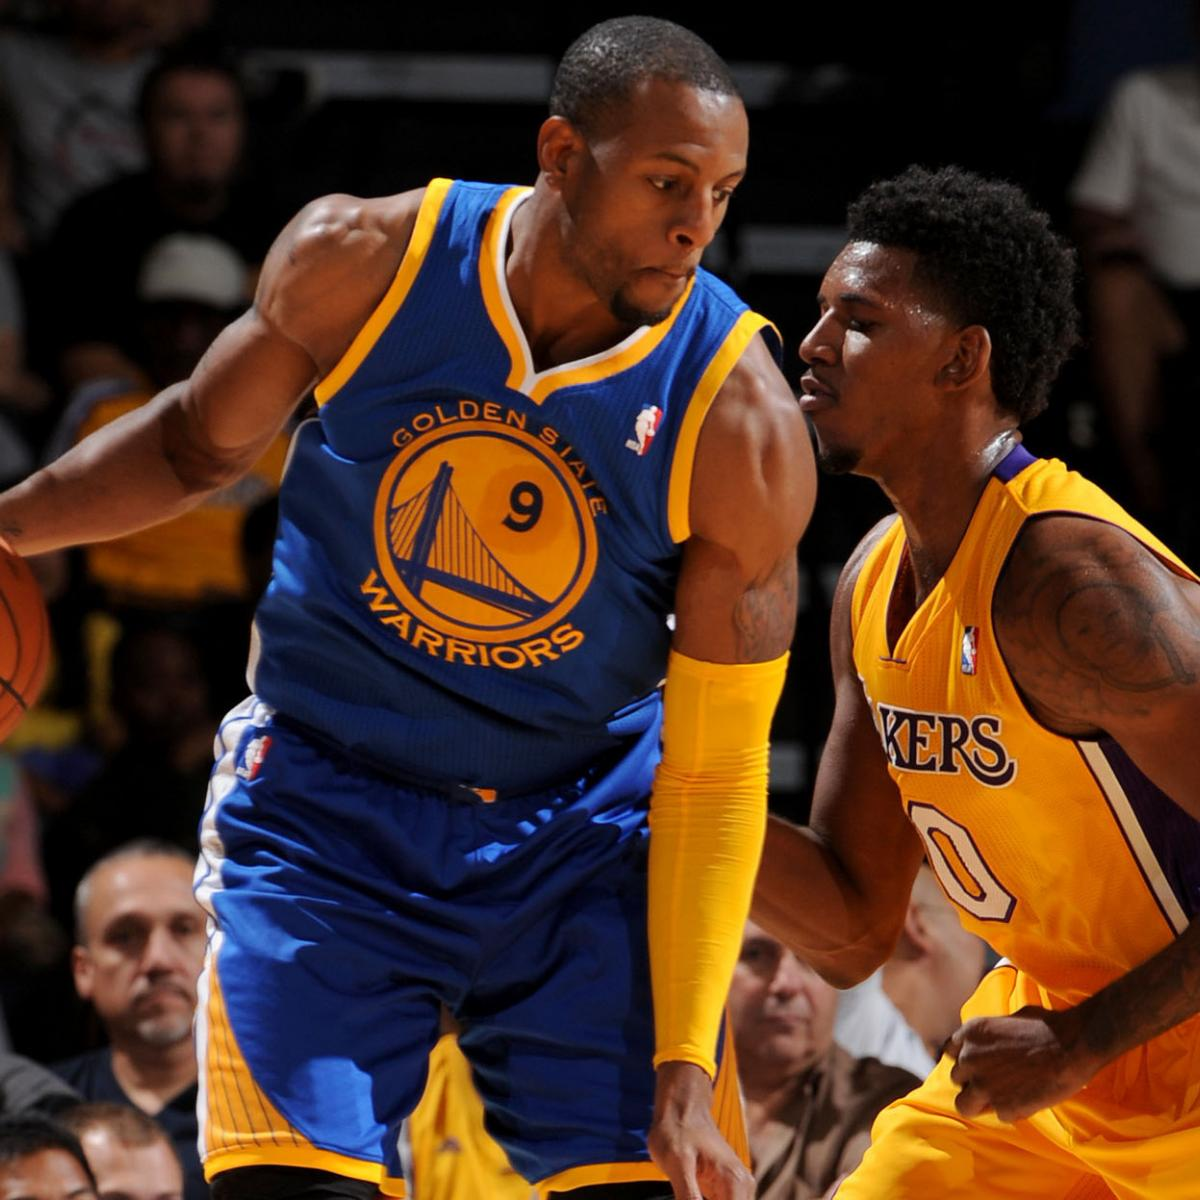 Golden State Warriors Vs. Los Angeles Lakers: Live Score